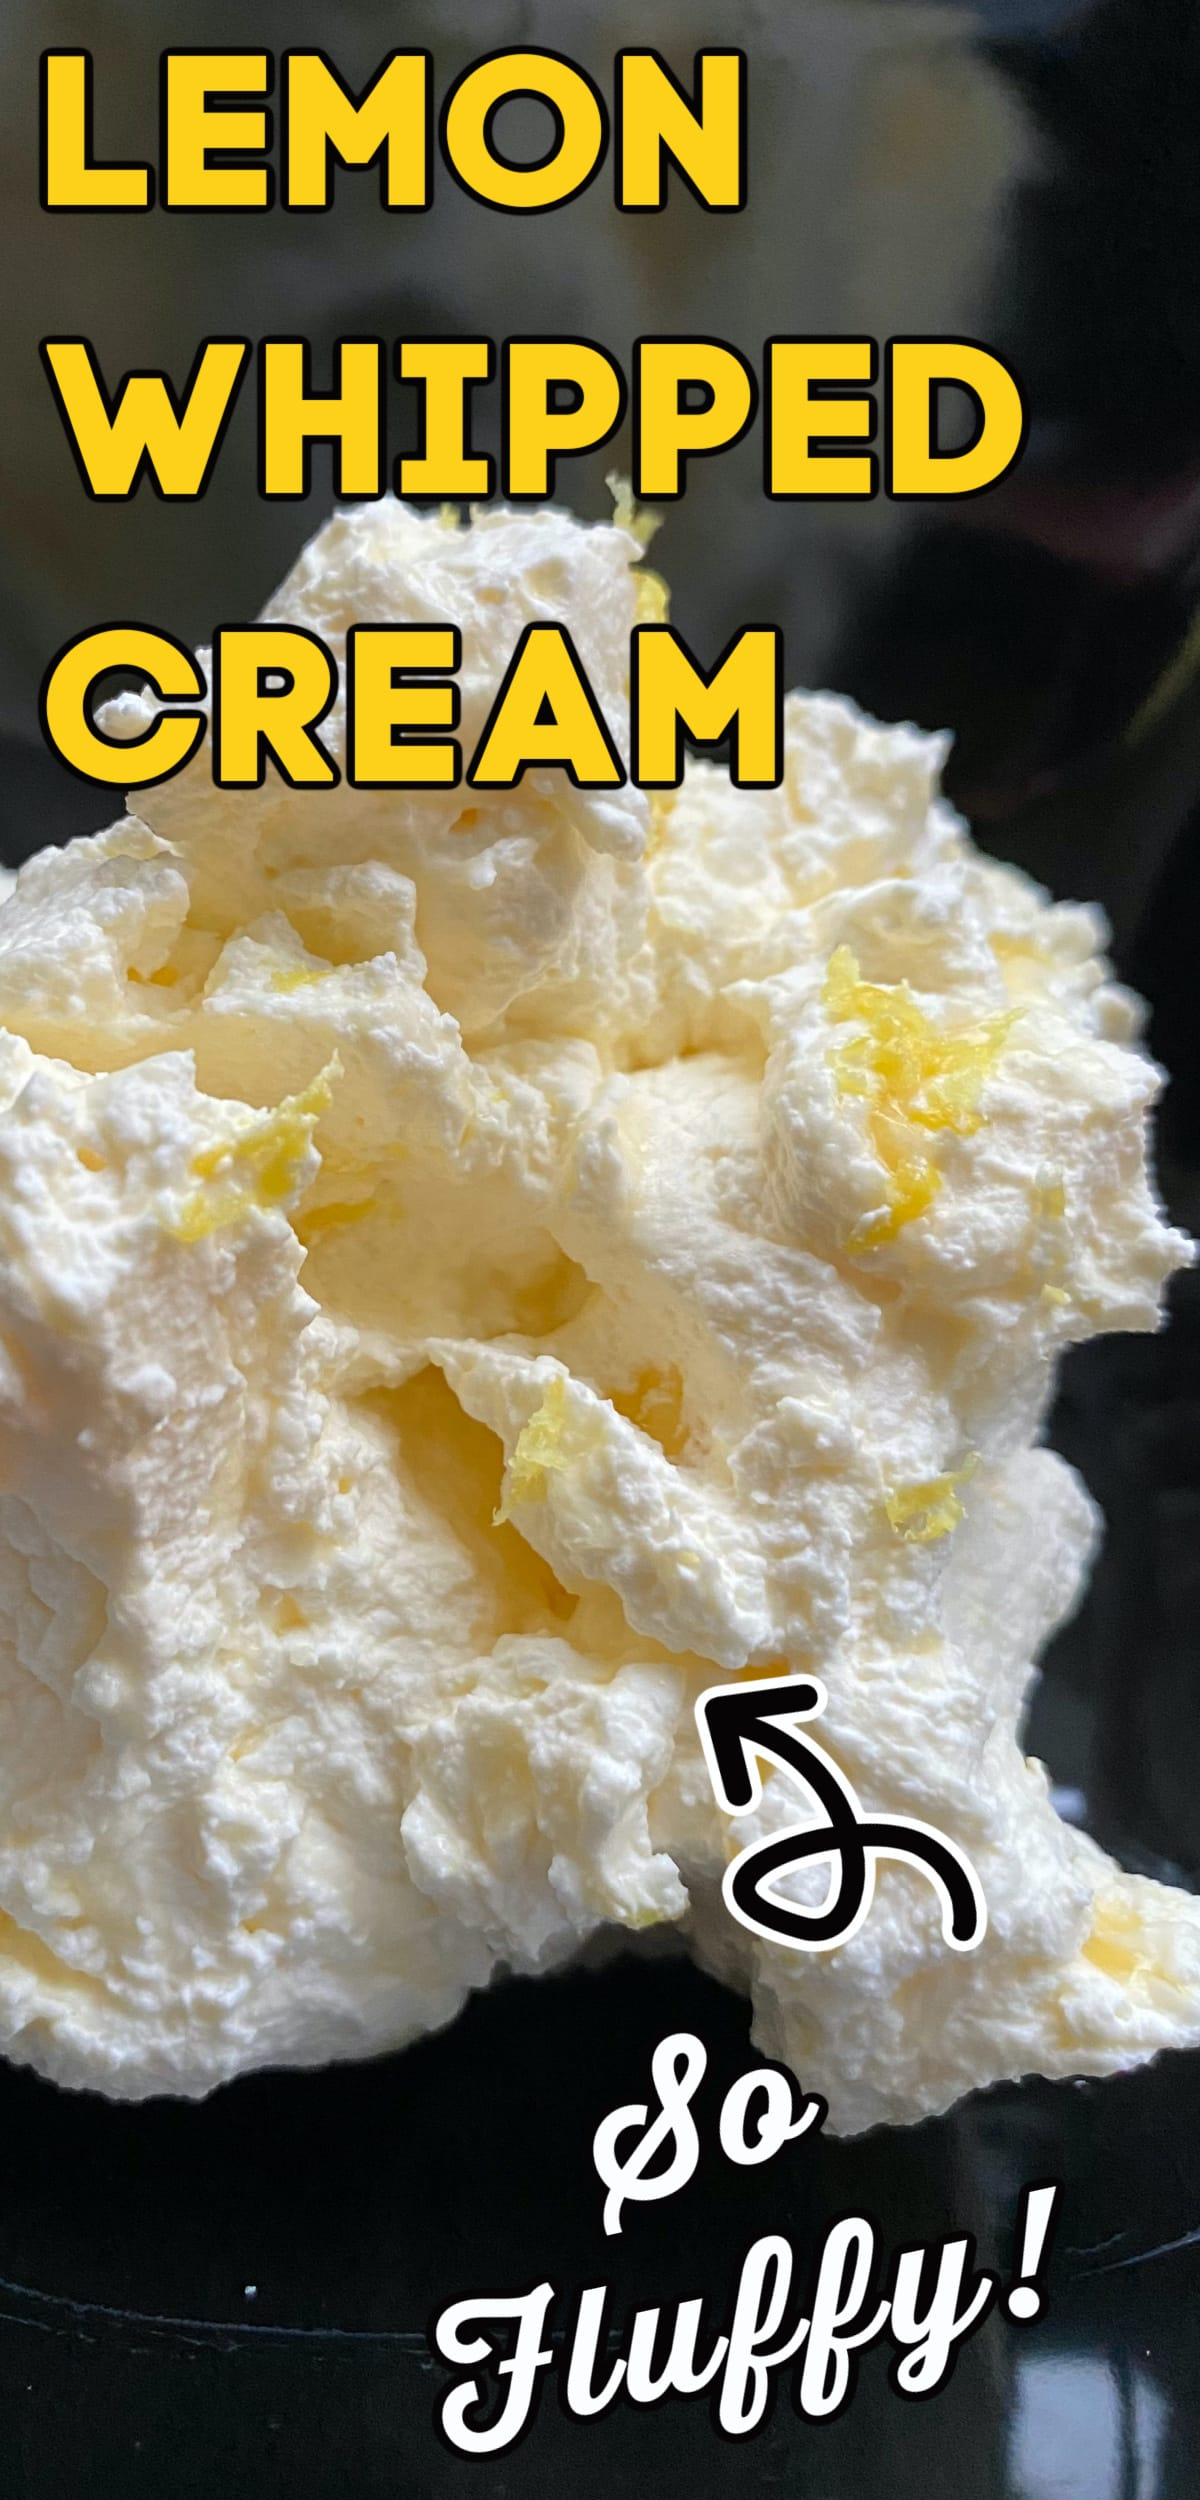 Lemon Whipped Cream, a very quick and easy recipe using fresh whipped cream to give you a sweet and tangy lemon flavour. Great with cakes or in a trifle